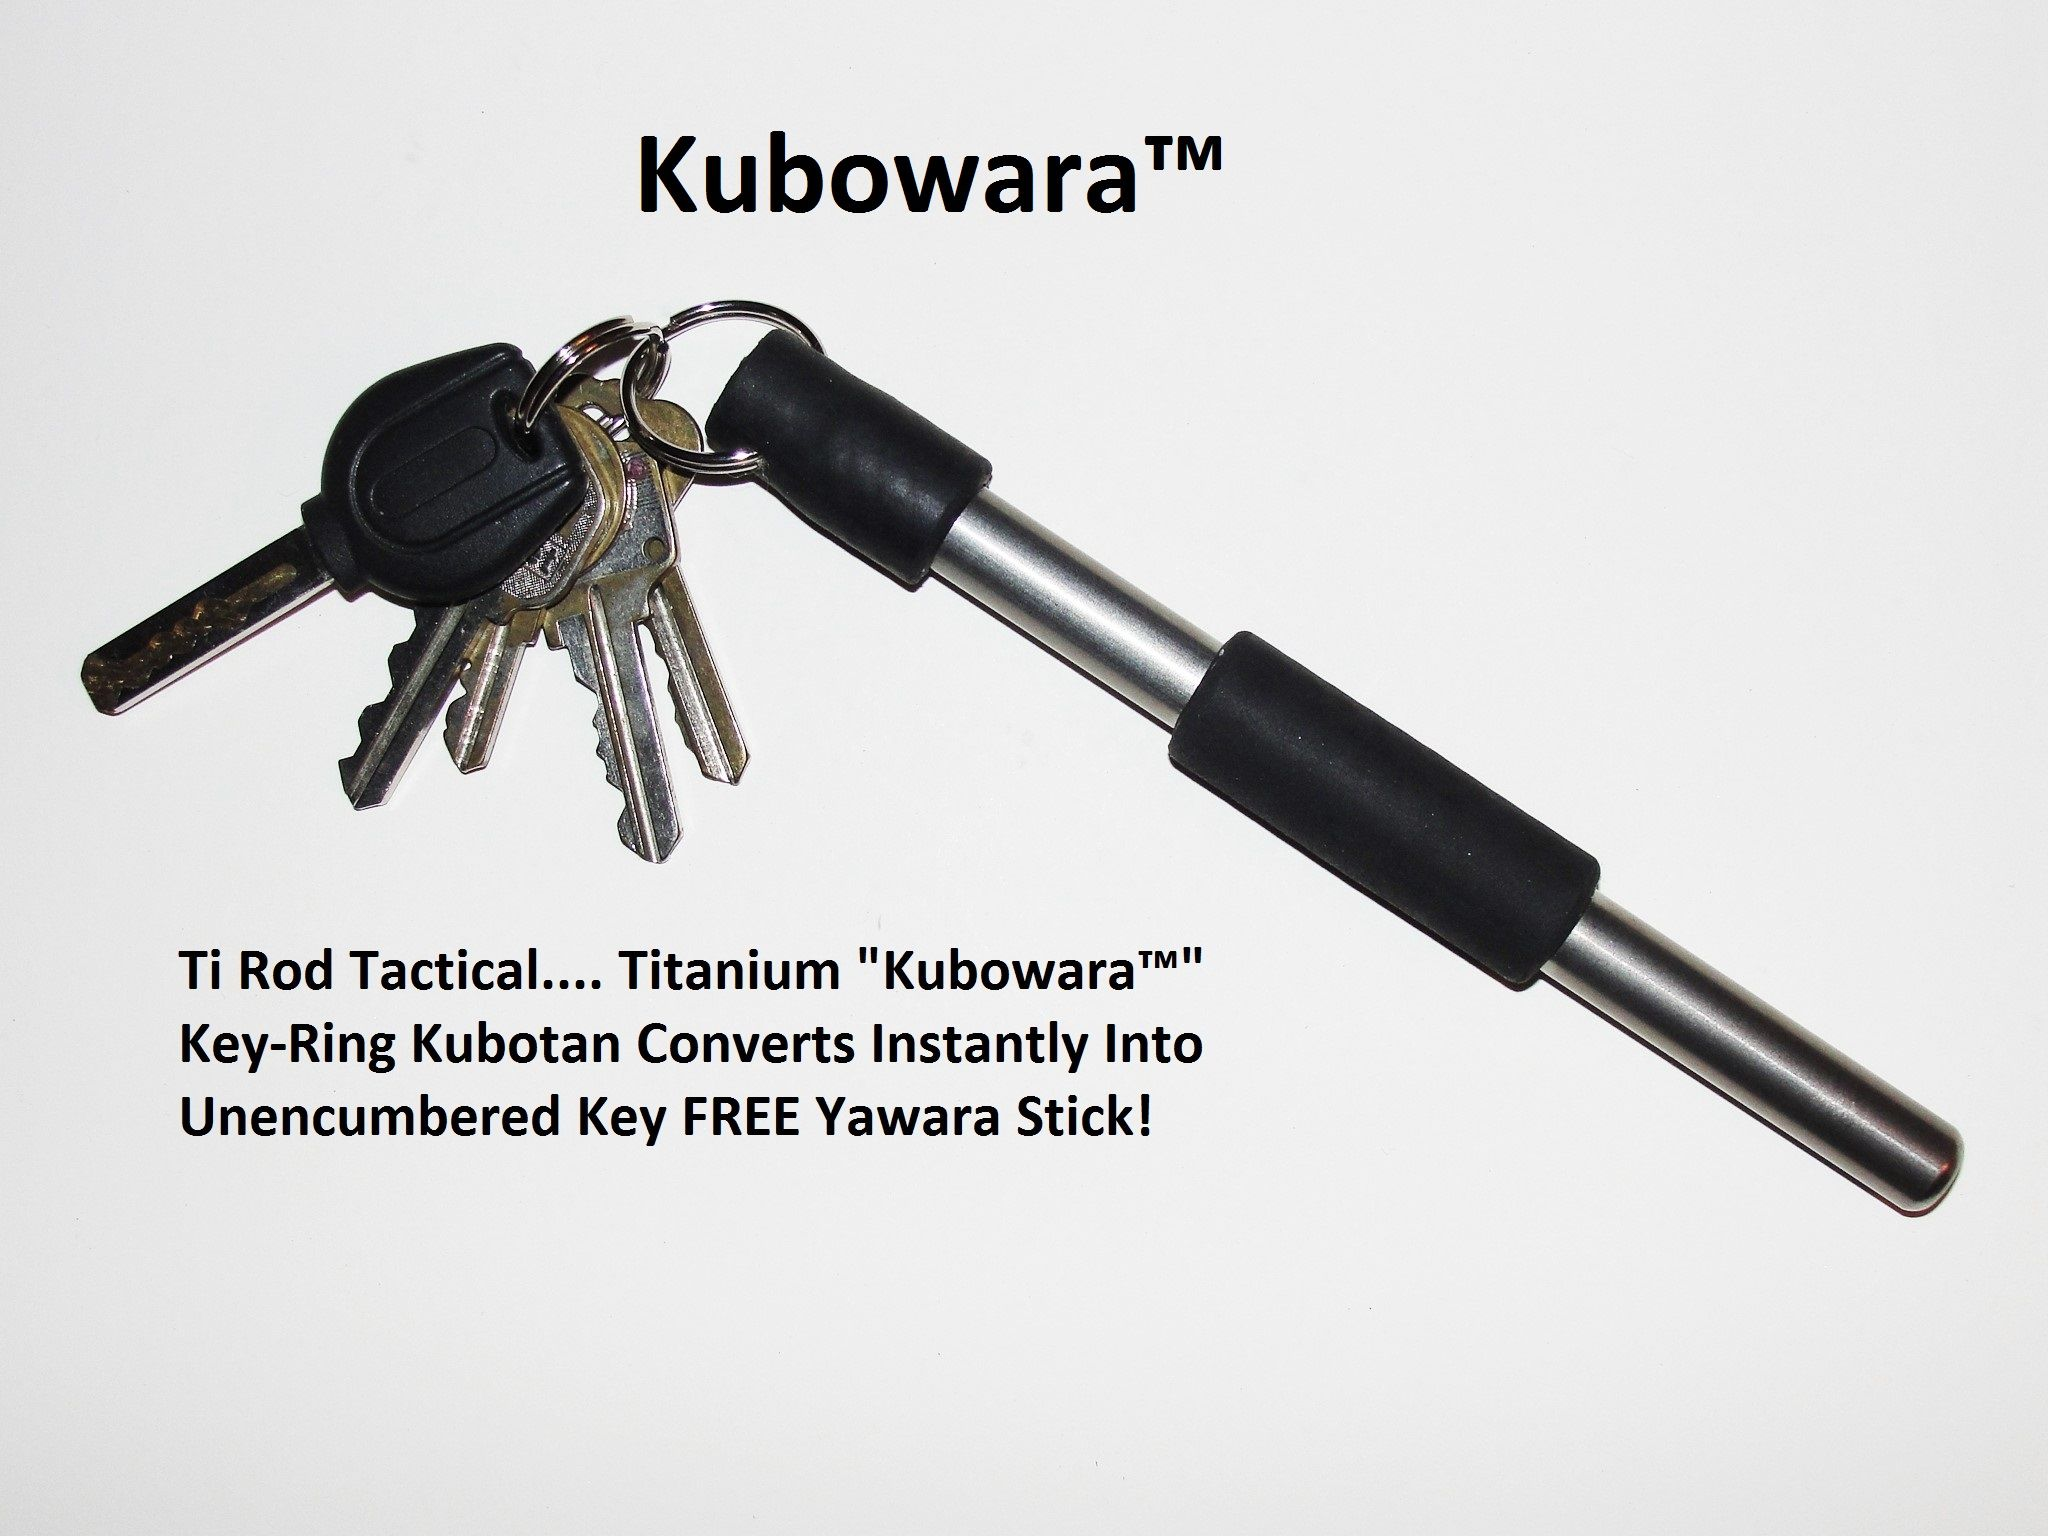 My Kubowara™ is a Key Ring Kubotan that converts instantly into a Key FREE  Unencumbered Yawara Stick for more effective Self Defense Use. 5b97bd4ee6